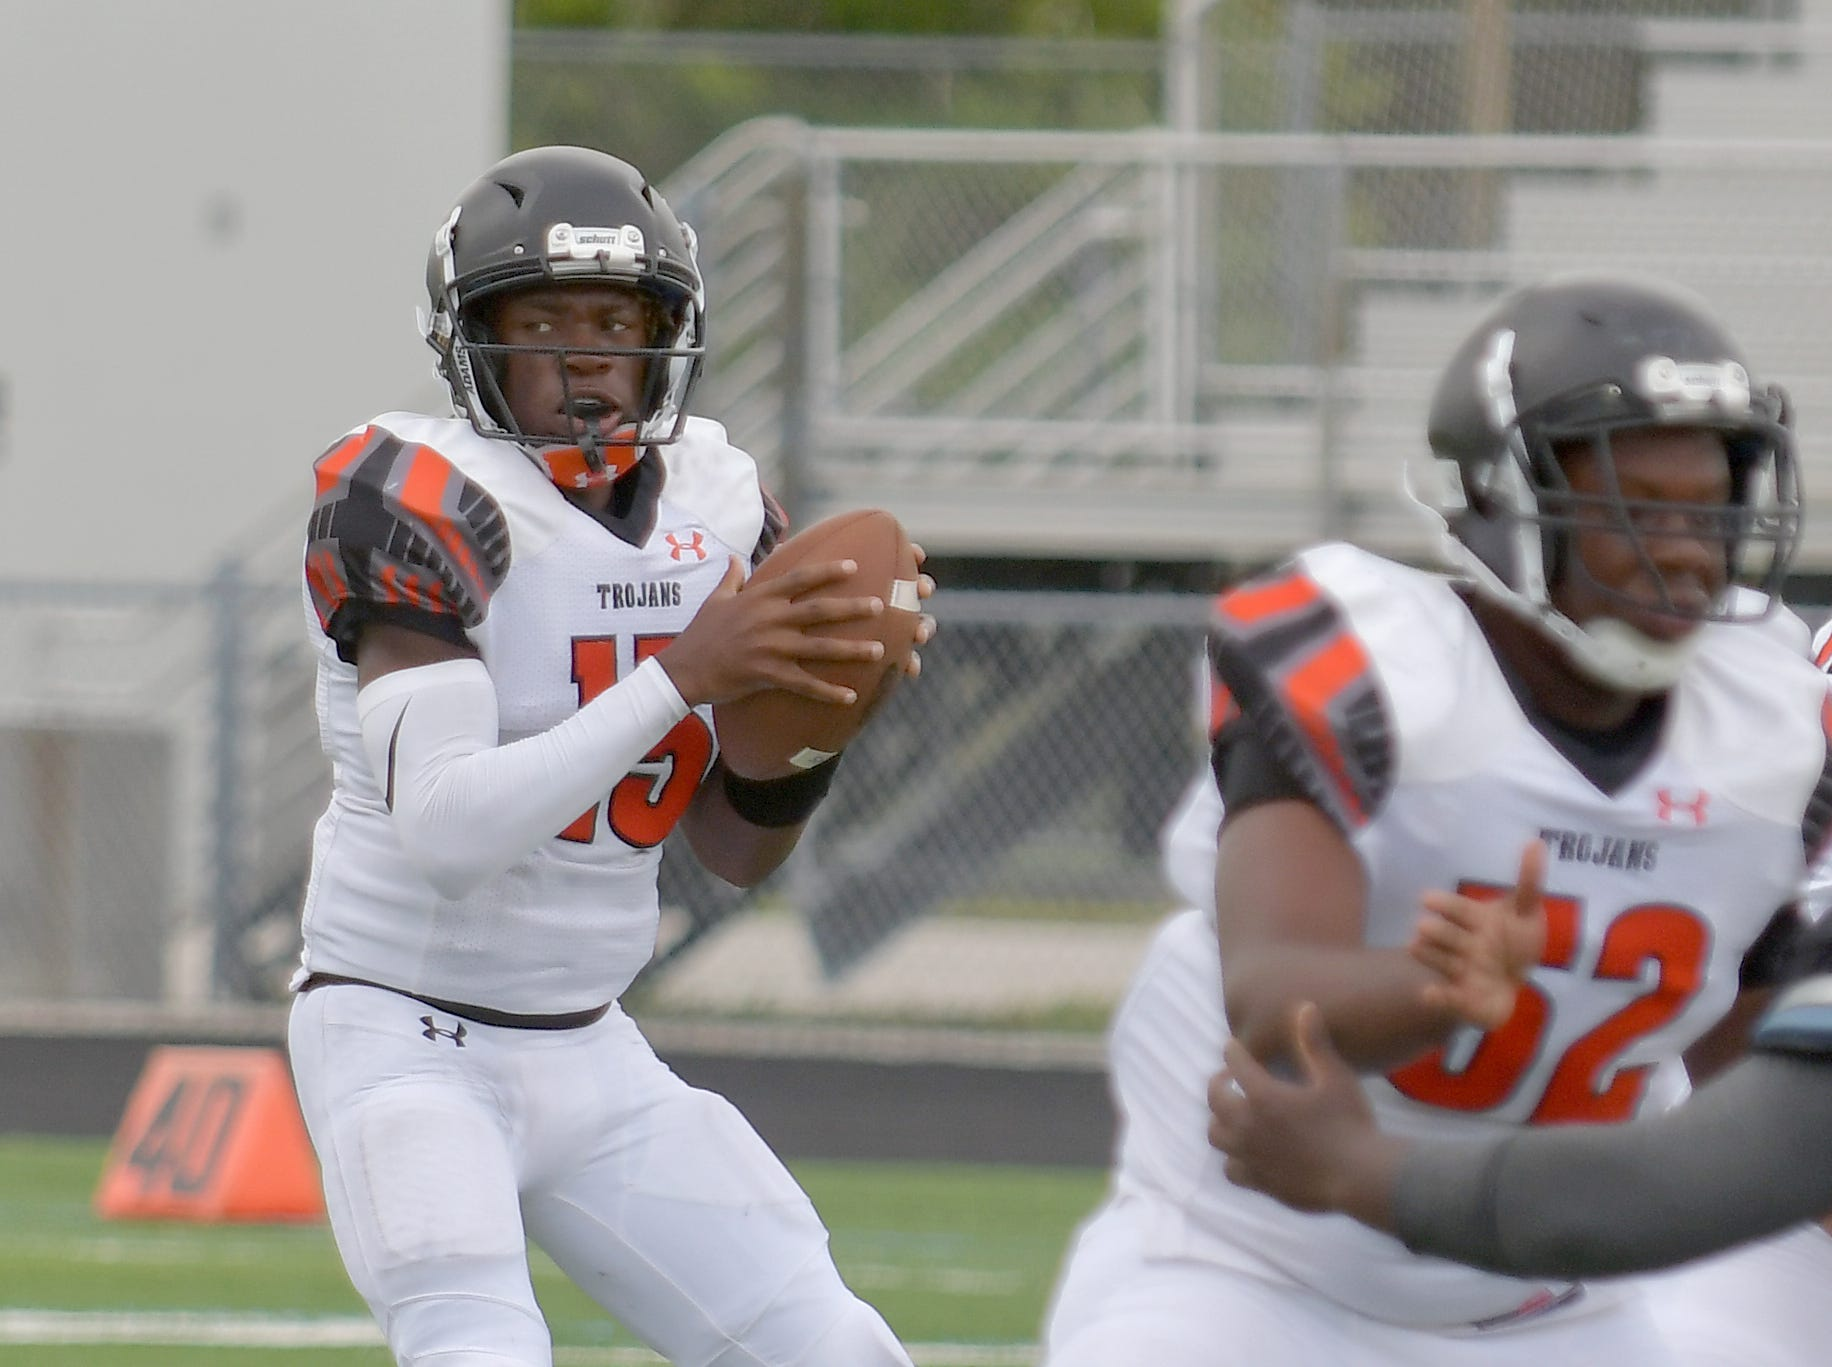 Lely High School quarterback Jonis Dieudonne (15) looks for an open man in their game with Gulf Coast High School in Naples on Saturday, Aug. 25, 2018.